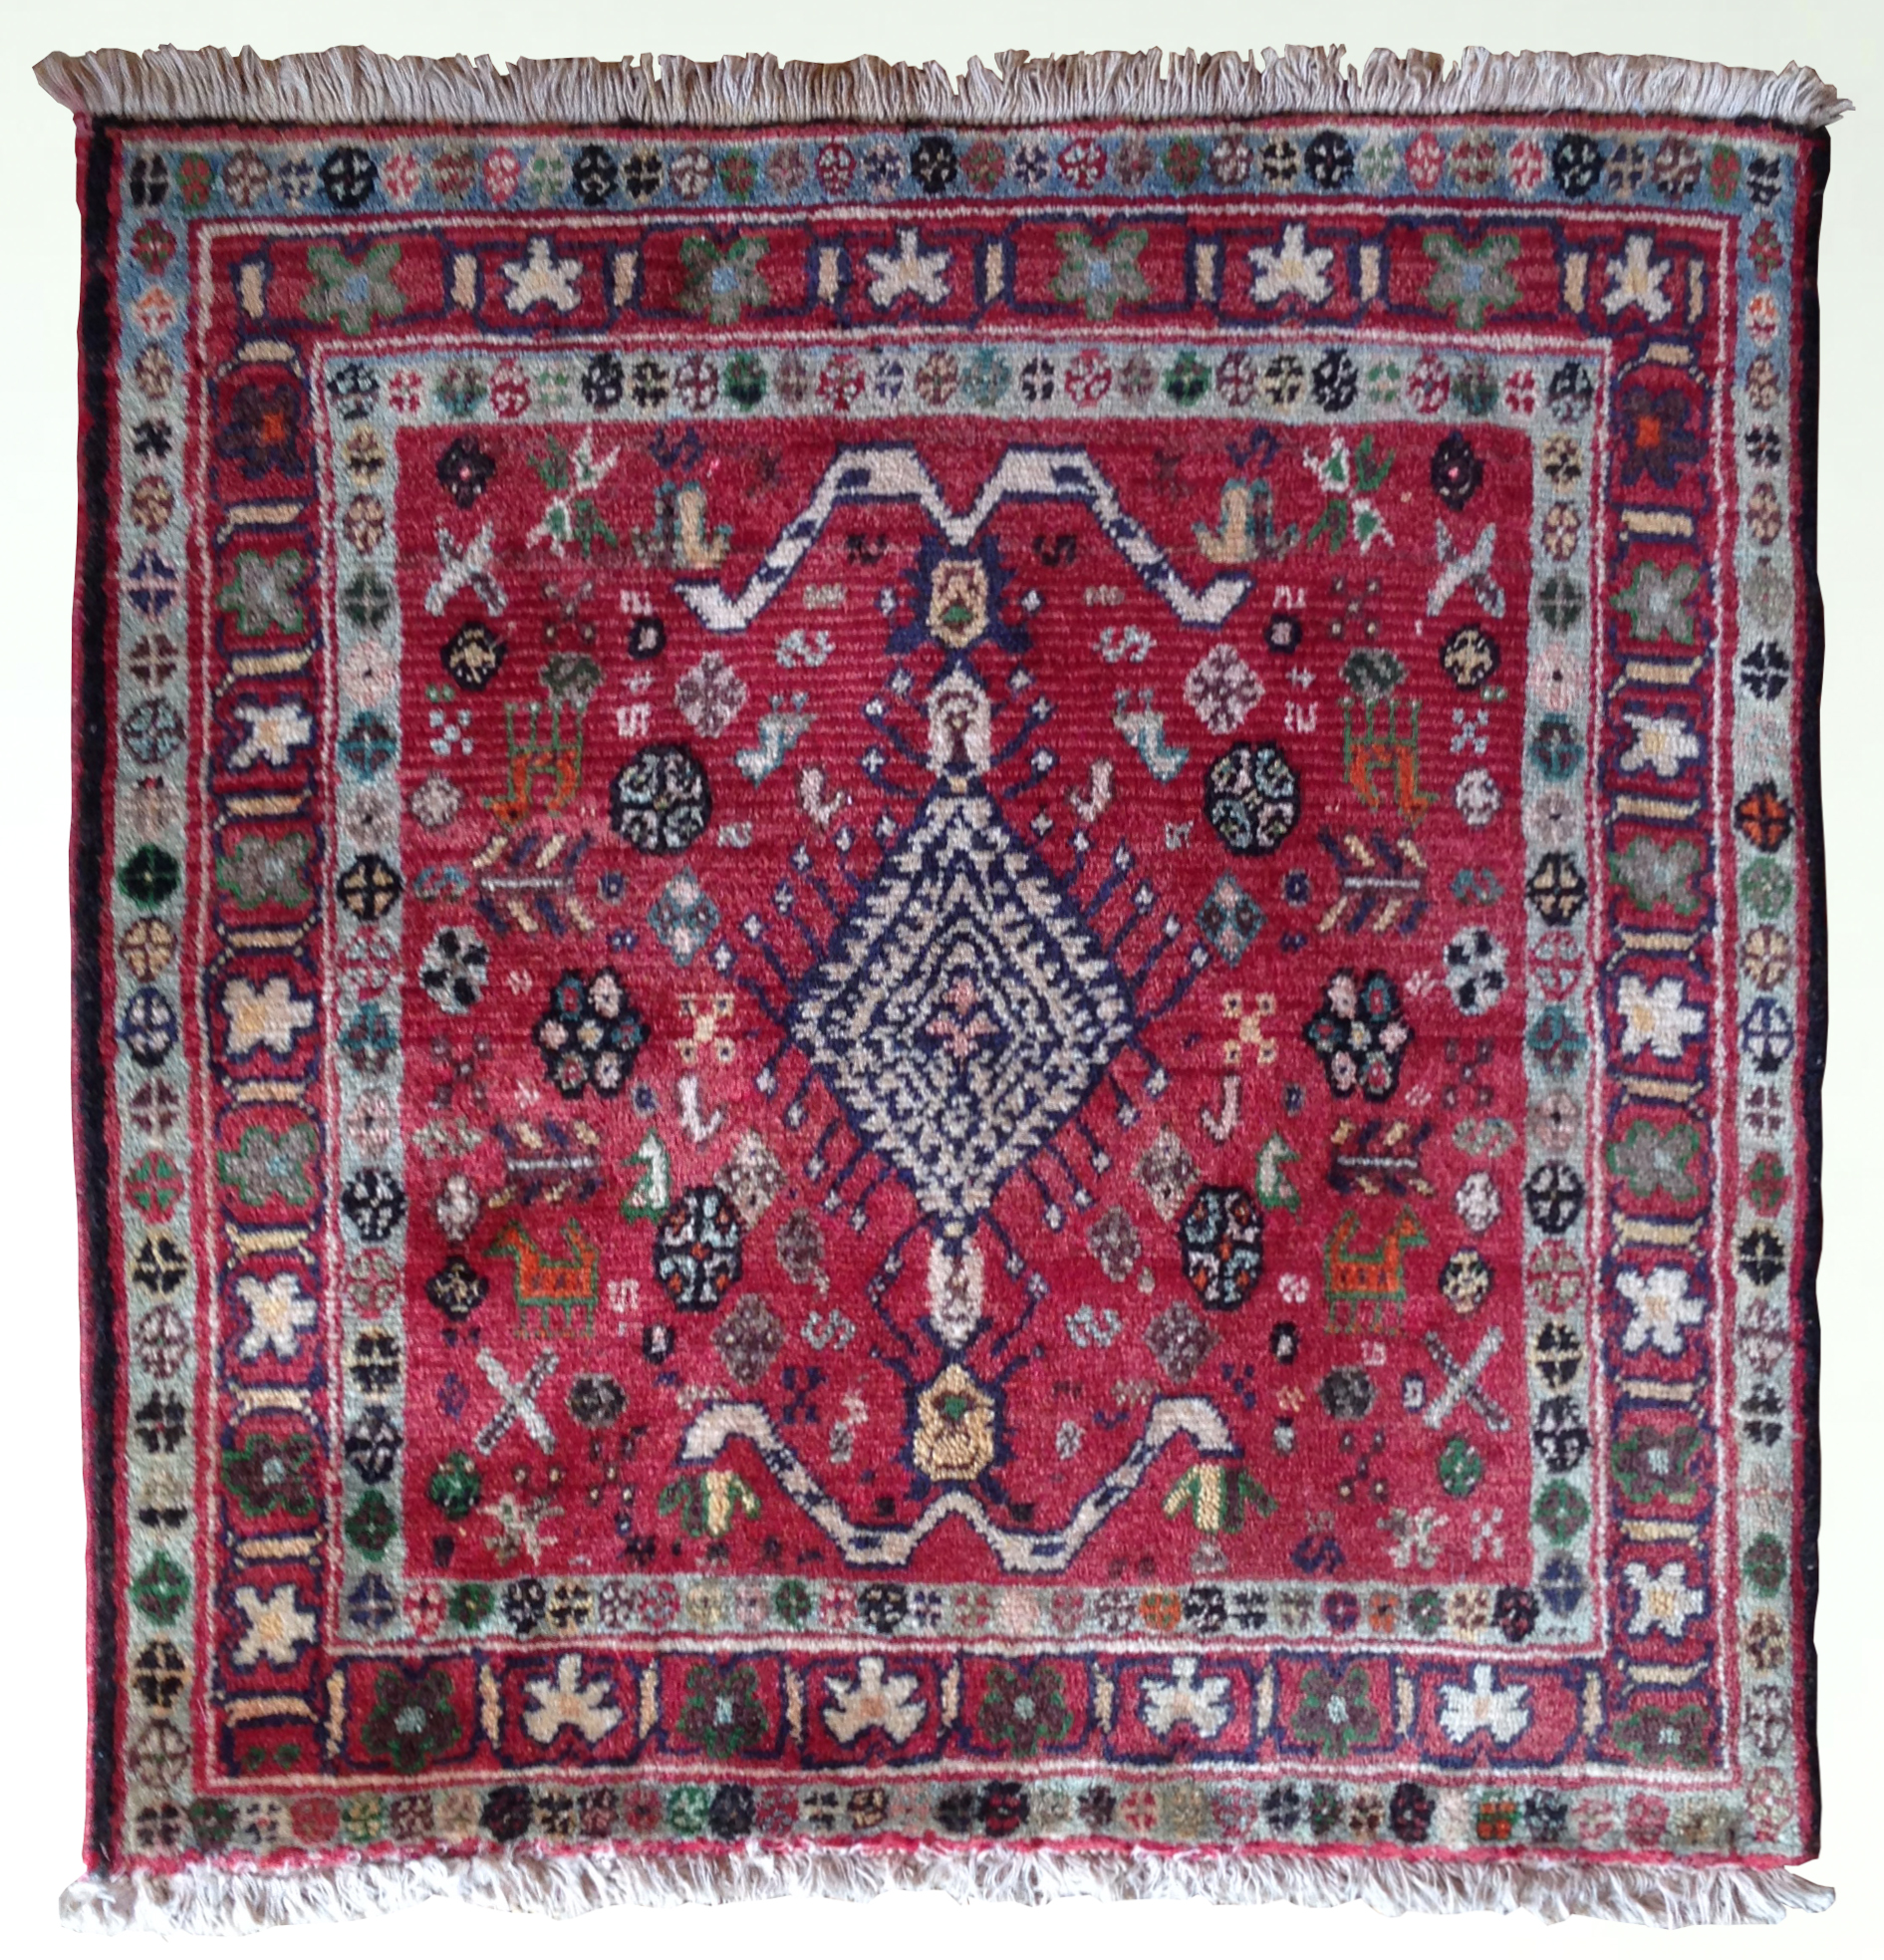 Qashqai Shiraz Rug: Qashqai Rugs: The Definitive Guide